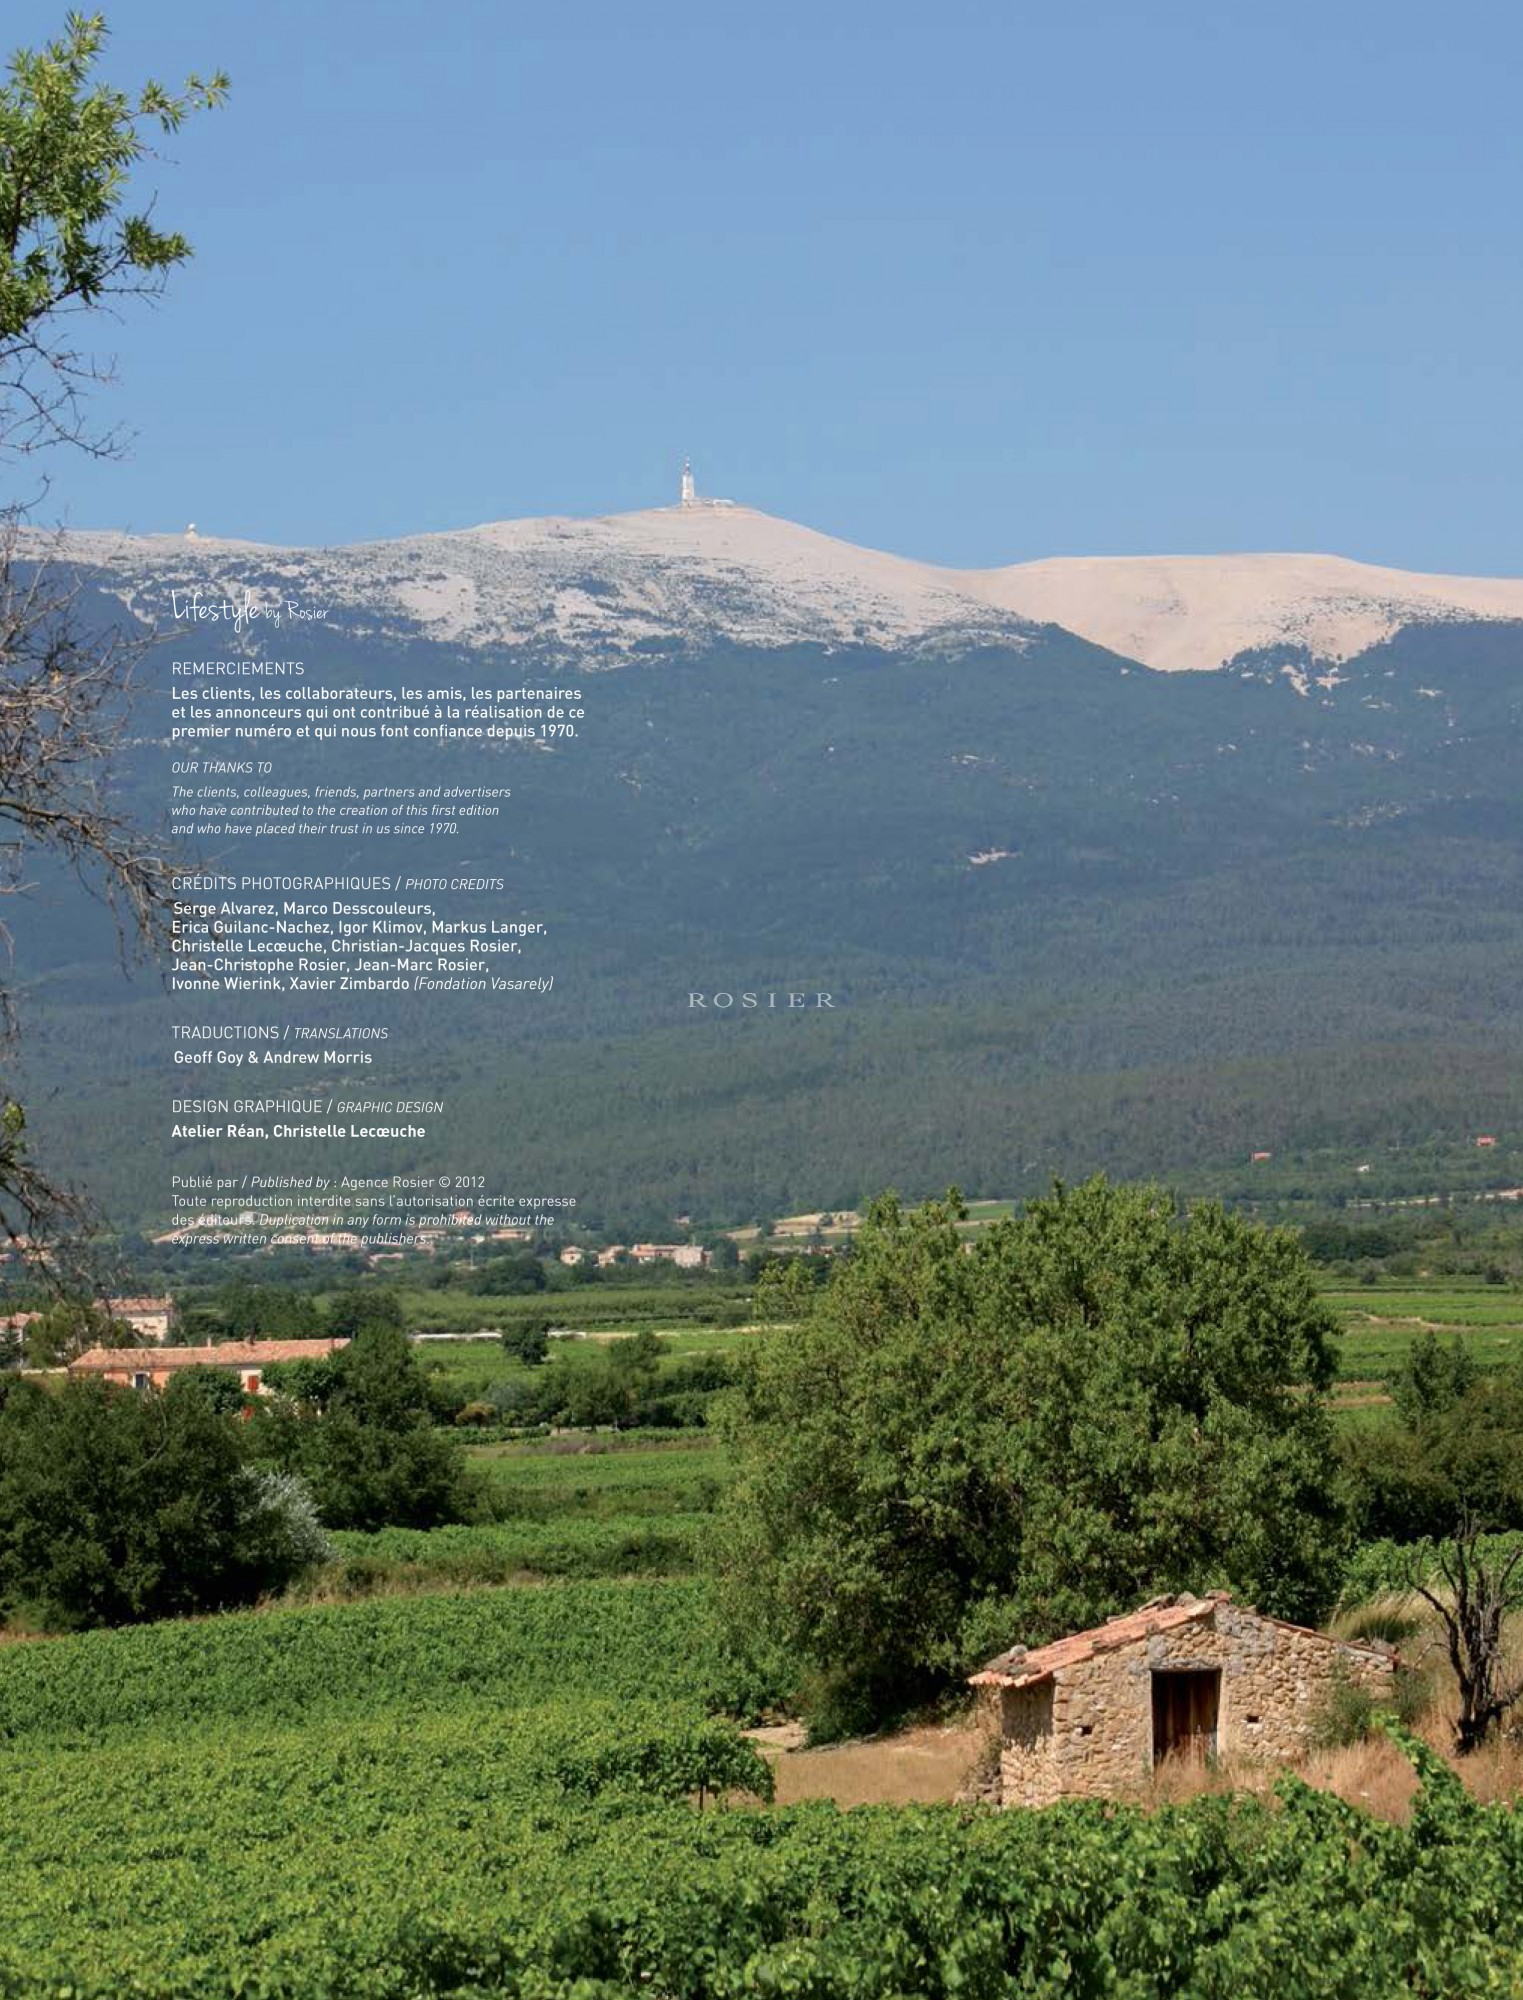 Mont Ventoux, Lifestyle by Rosier 2012